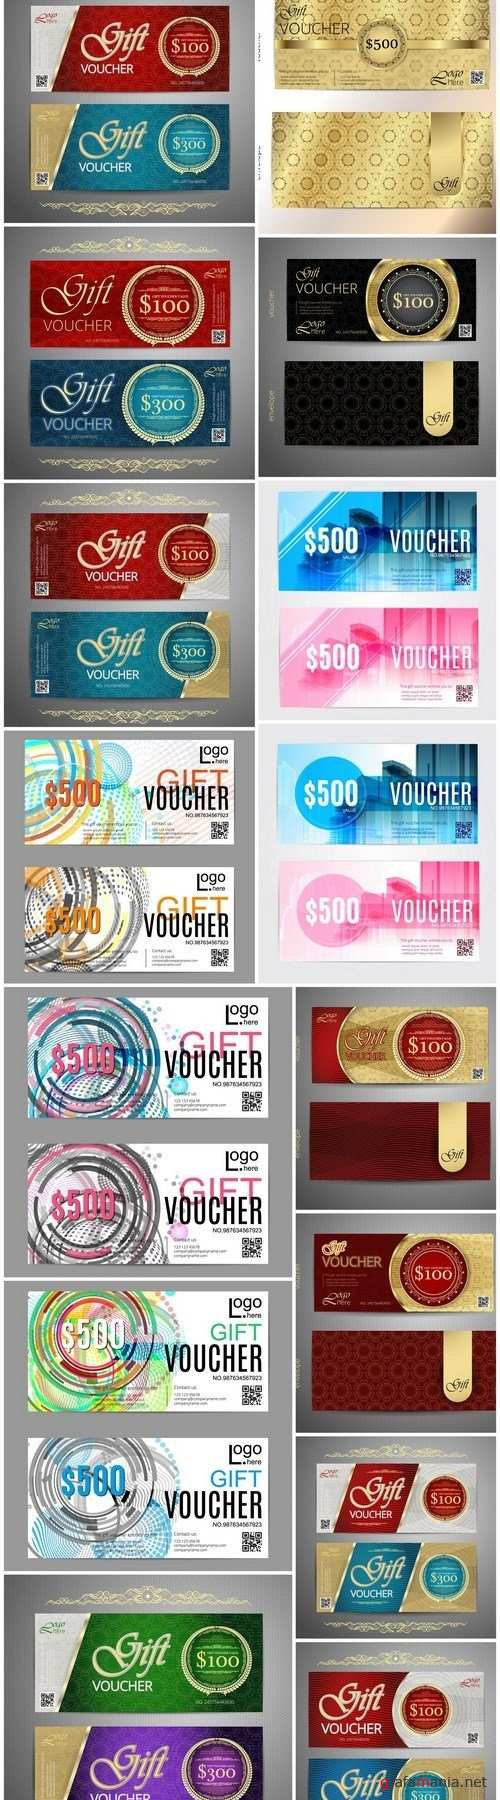 Collection of gift cards and vouchers 3 - 15xEPS